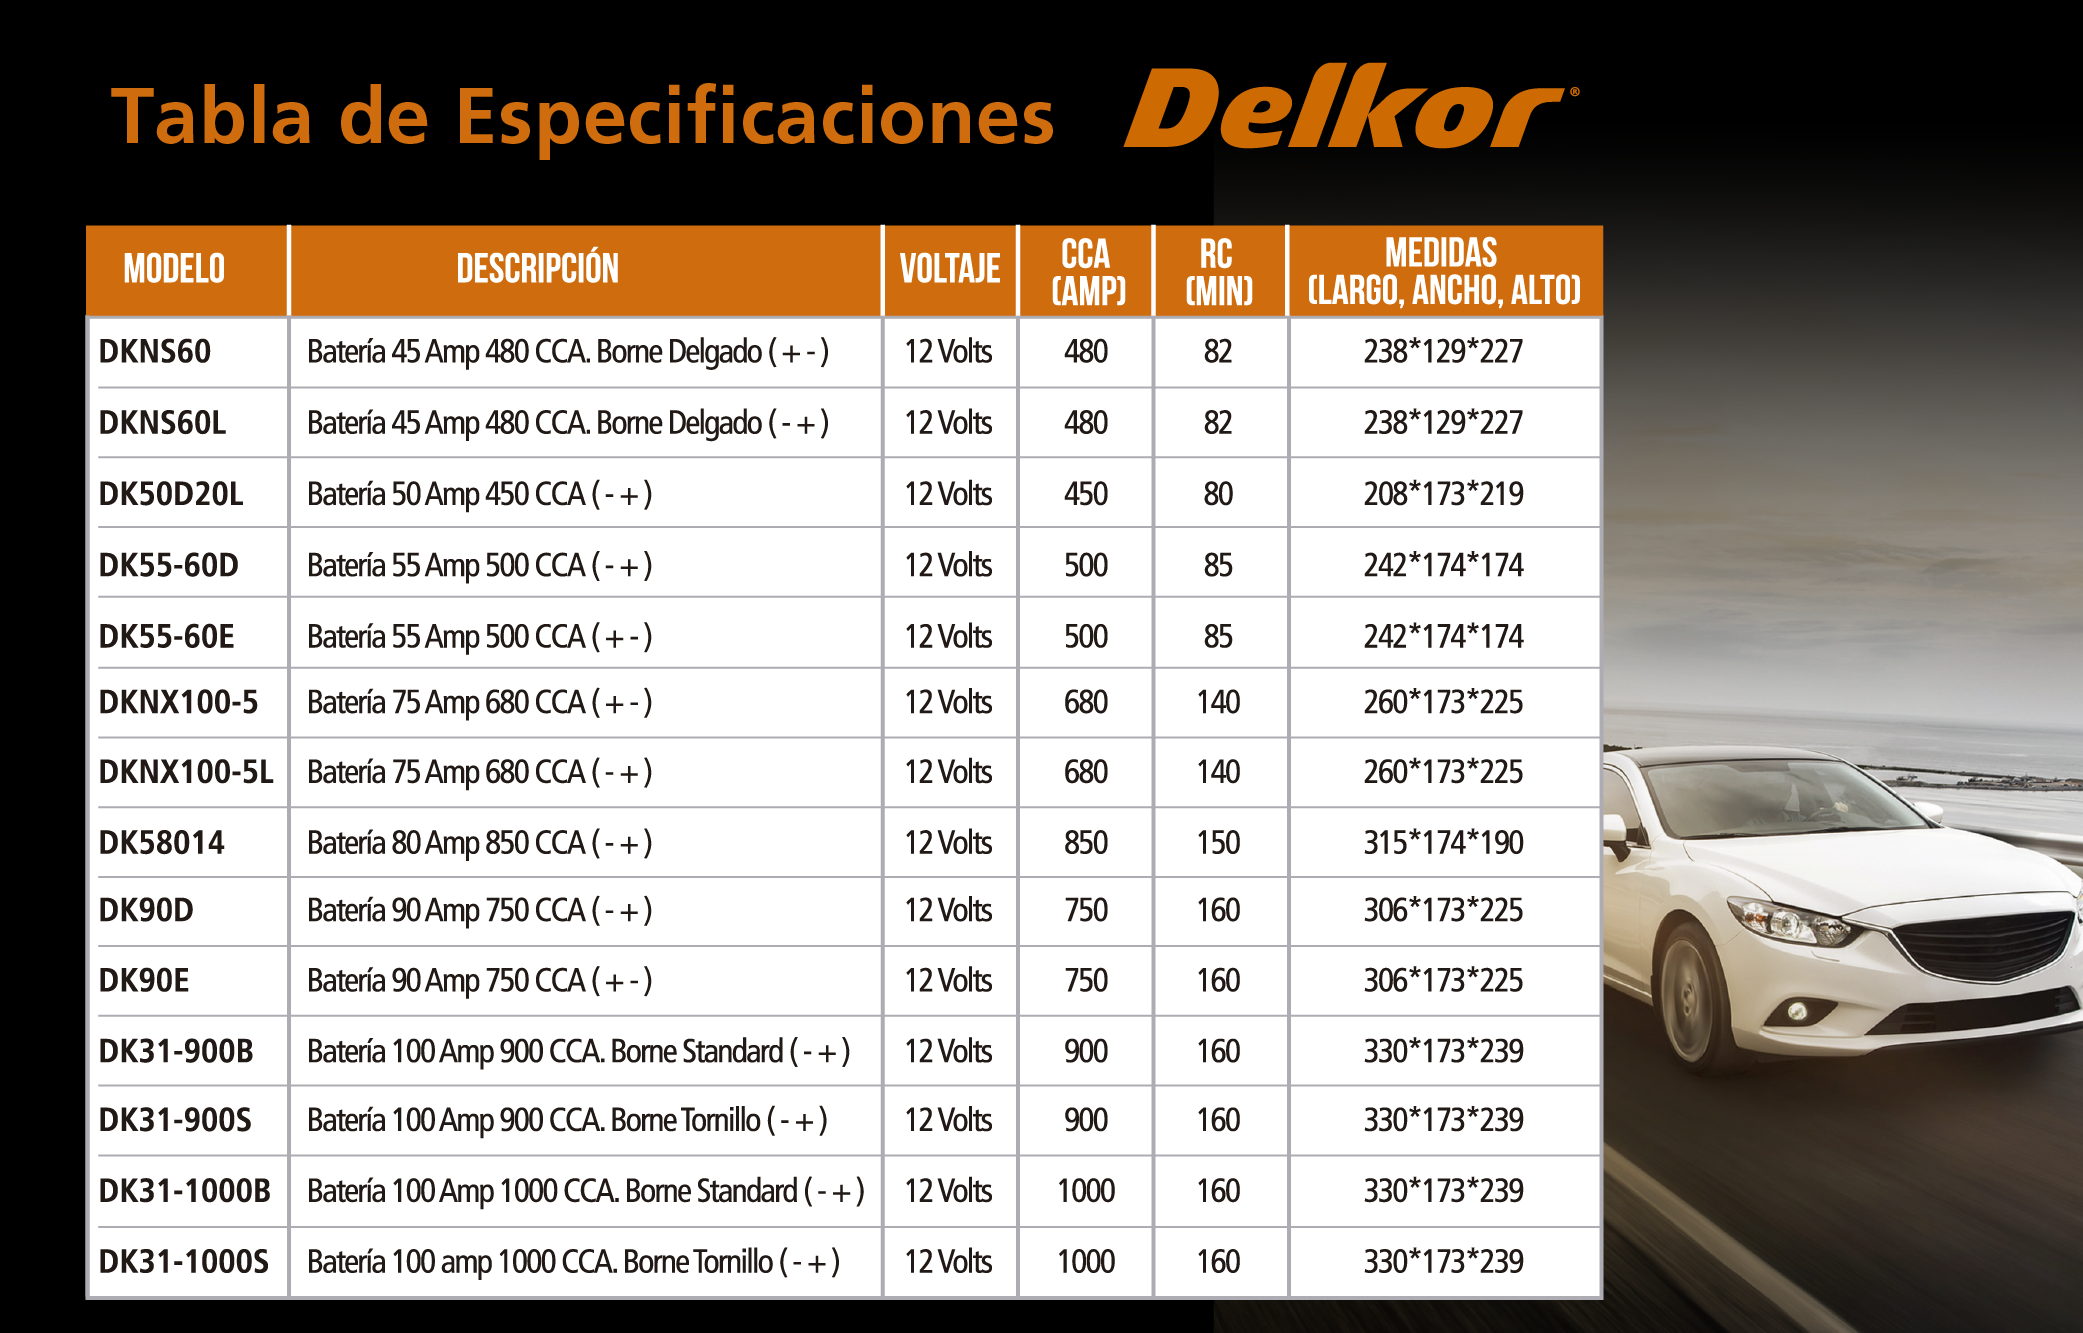 BANNERS_DELKOR-03__500_X_320_PX_300_DPI.png